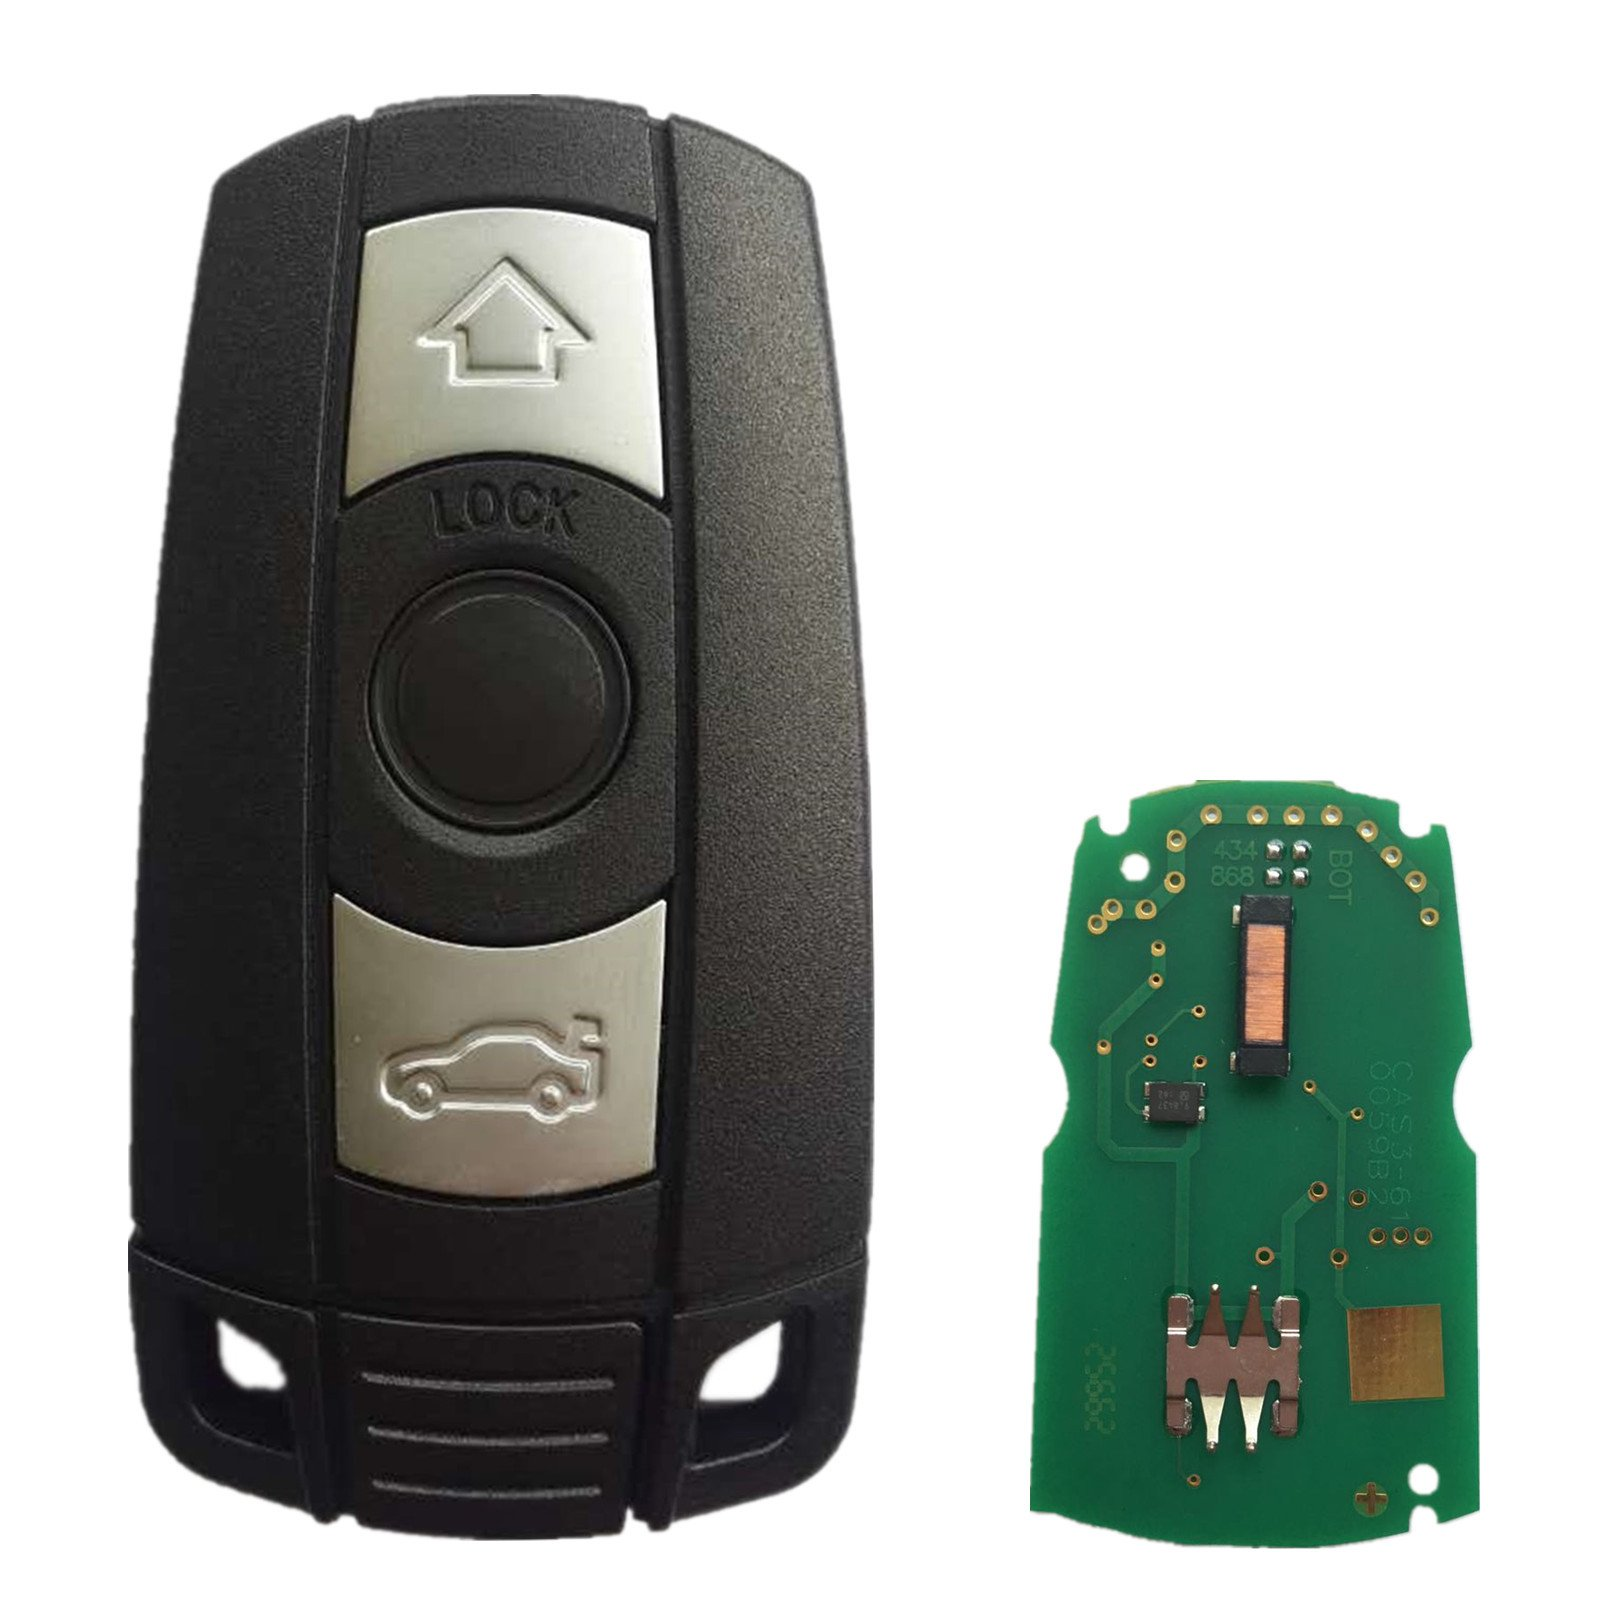 Dudely Remote Key 3 Button 433 MHz w/ID7944 Chip Fob for BMW 1 3 5 6 7 Series